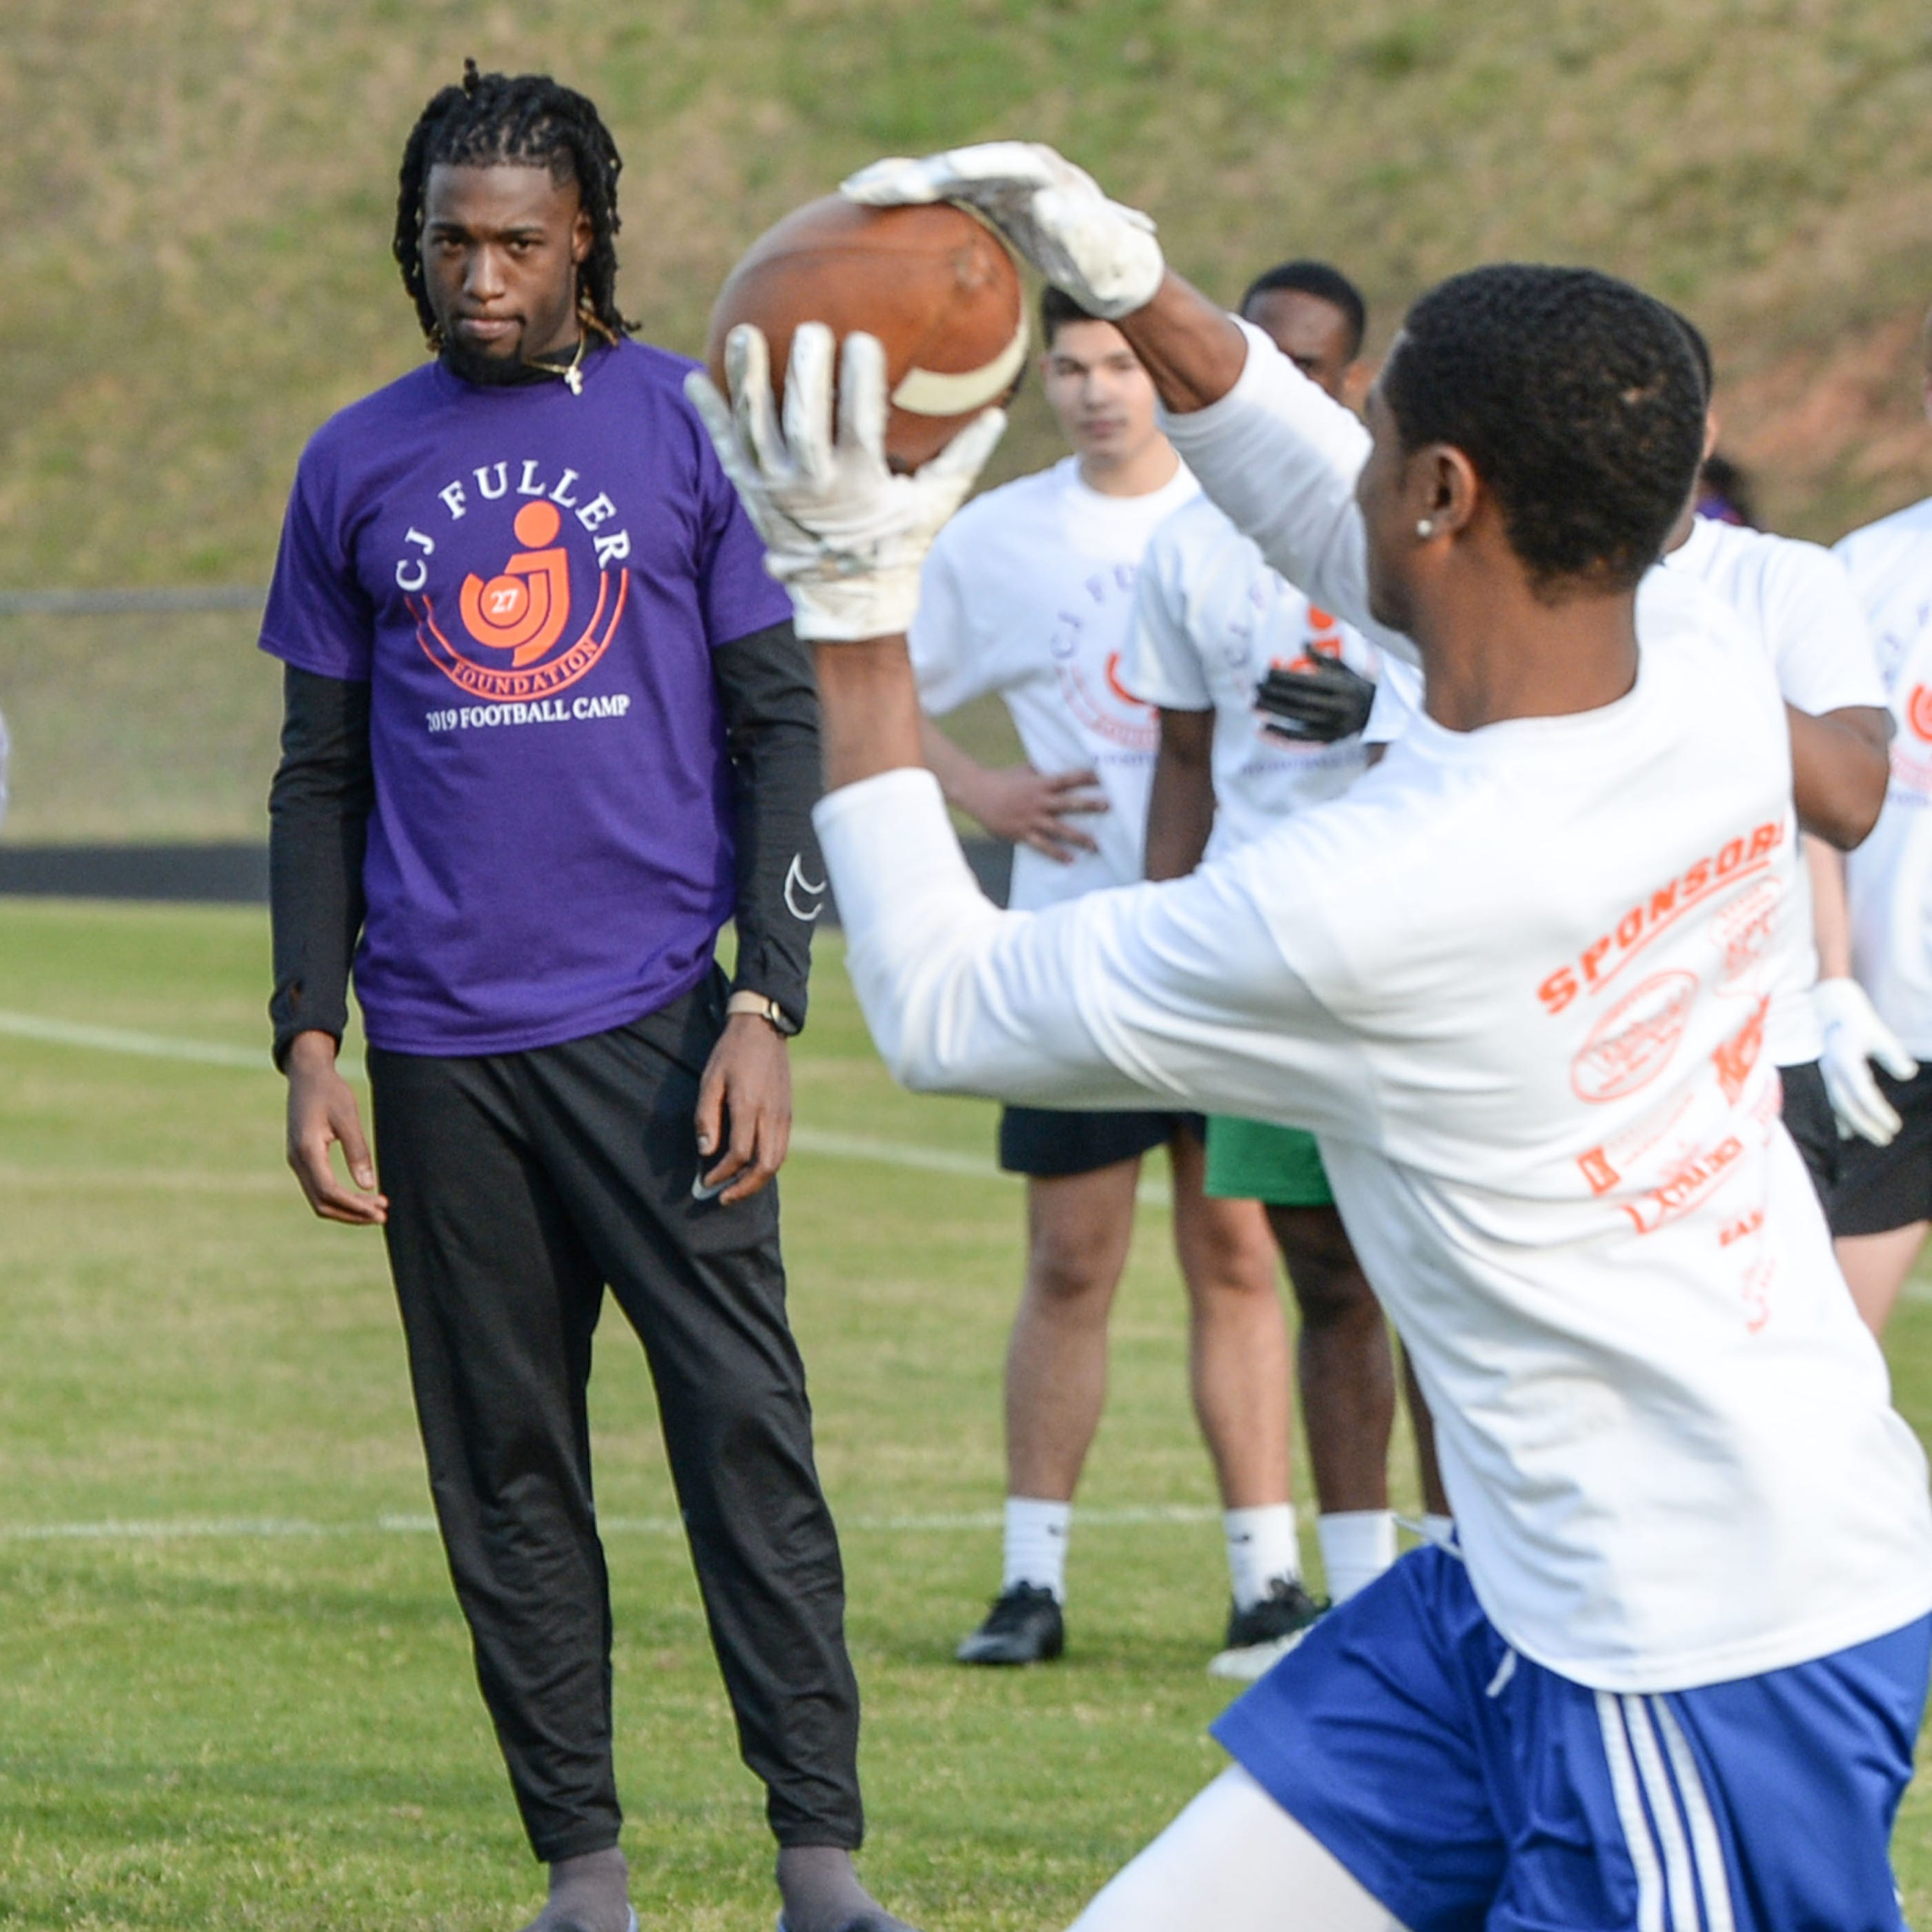 NFL and former Clemson players honor C.J. Fuller with a football camp at Easley High